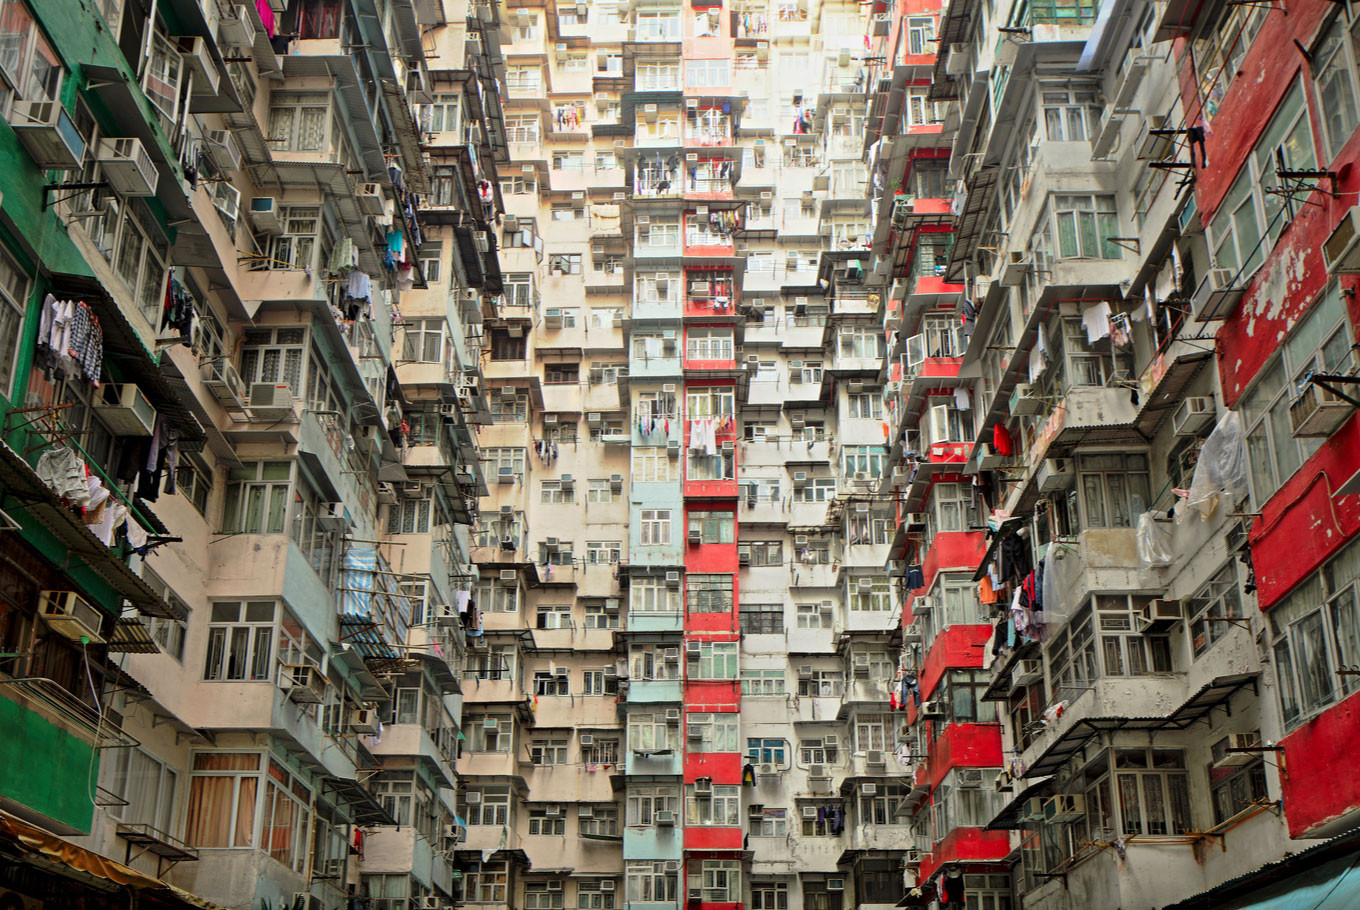 Hong Kong attracts tourists with 'Gram-worthy residential estates